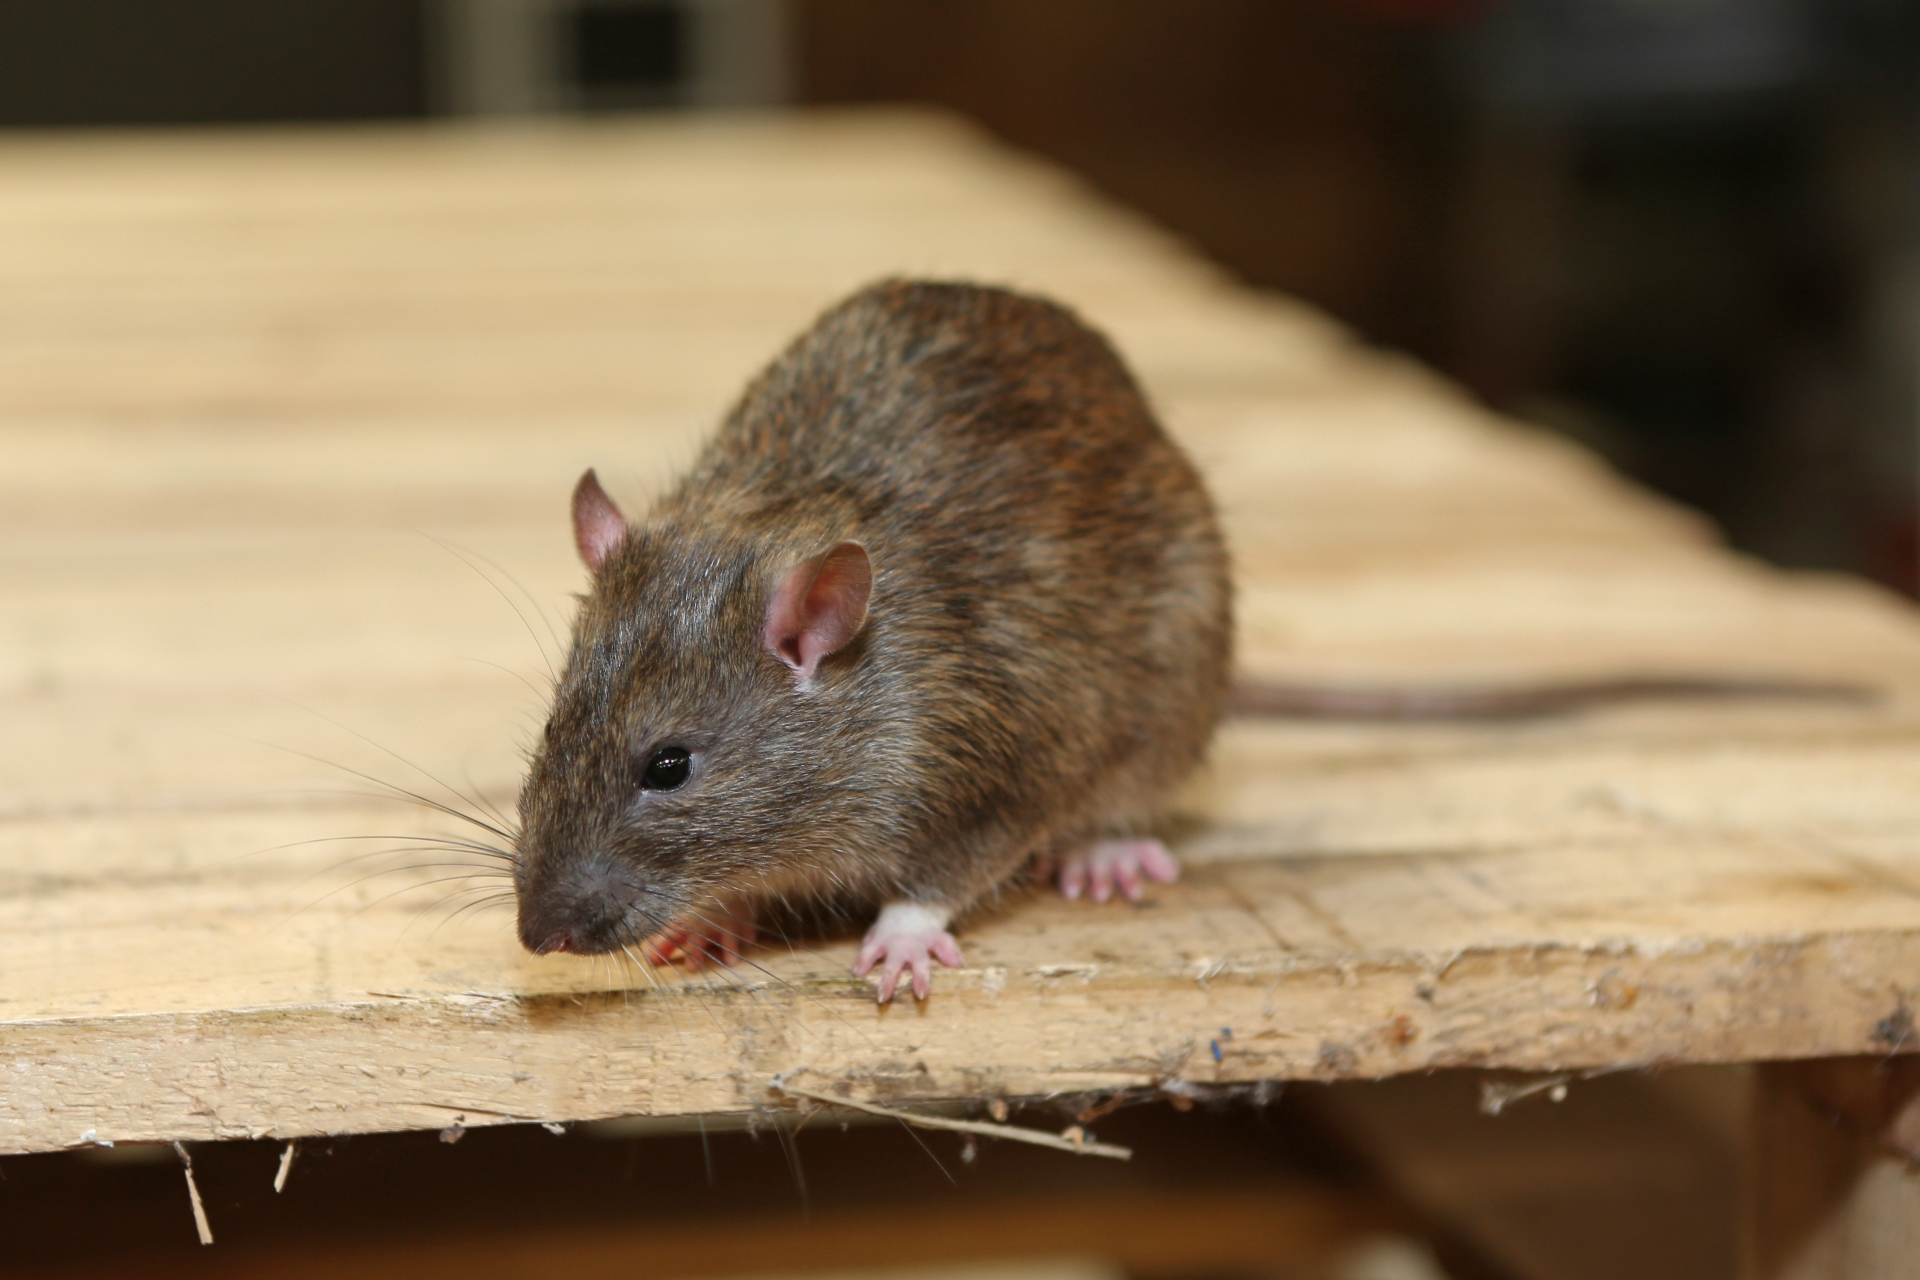 Rat Control, Pest Control in Mile End, Stepney, E1. Call Now 020 8166 9746